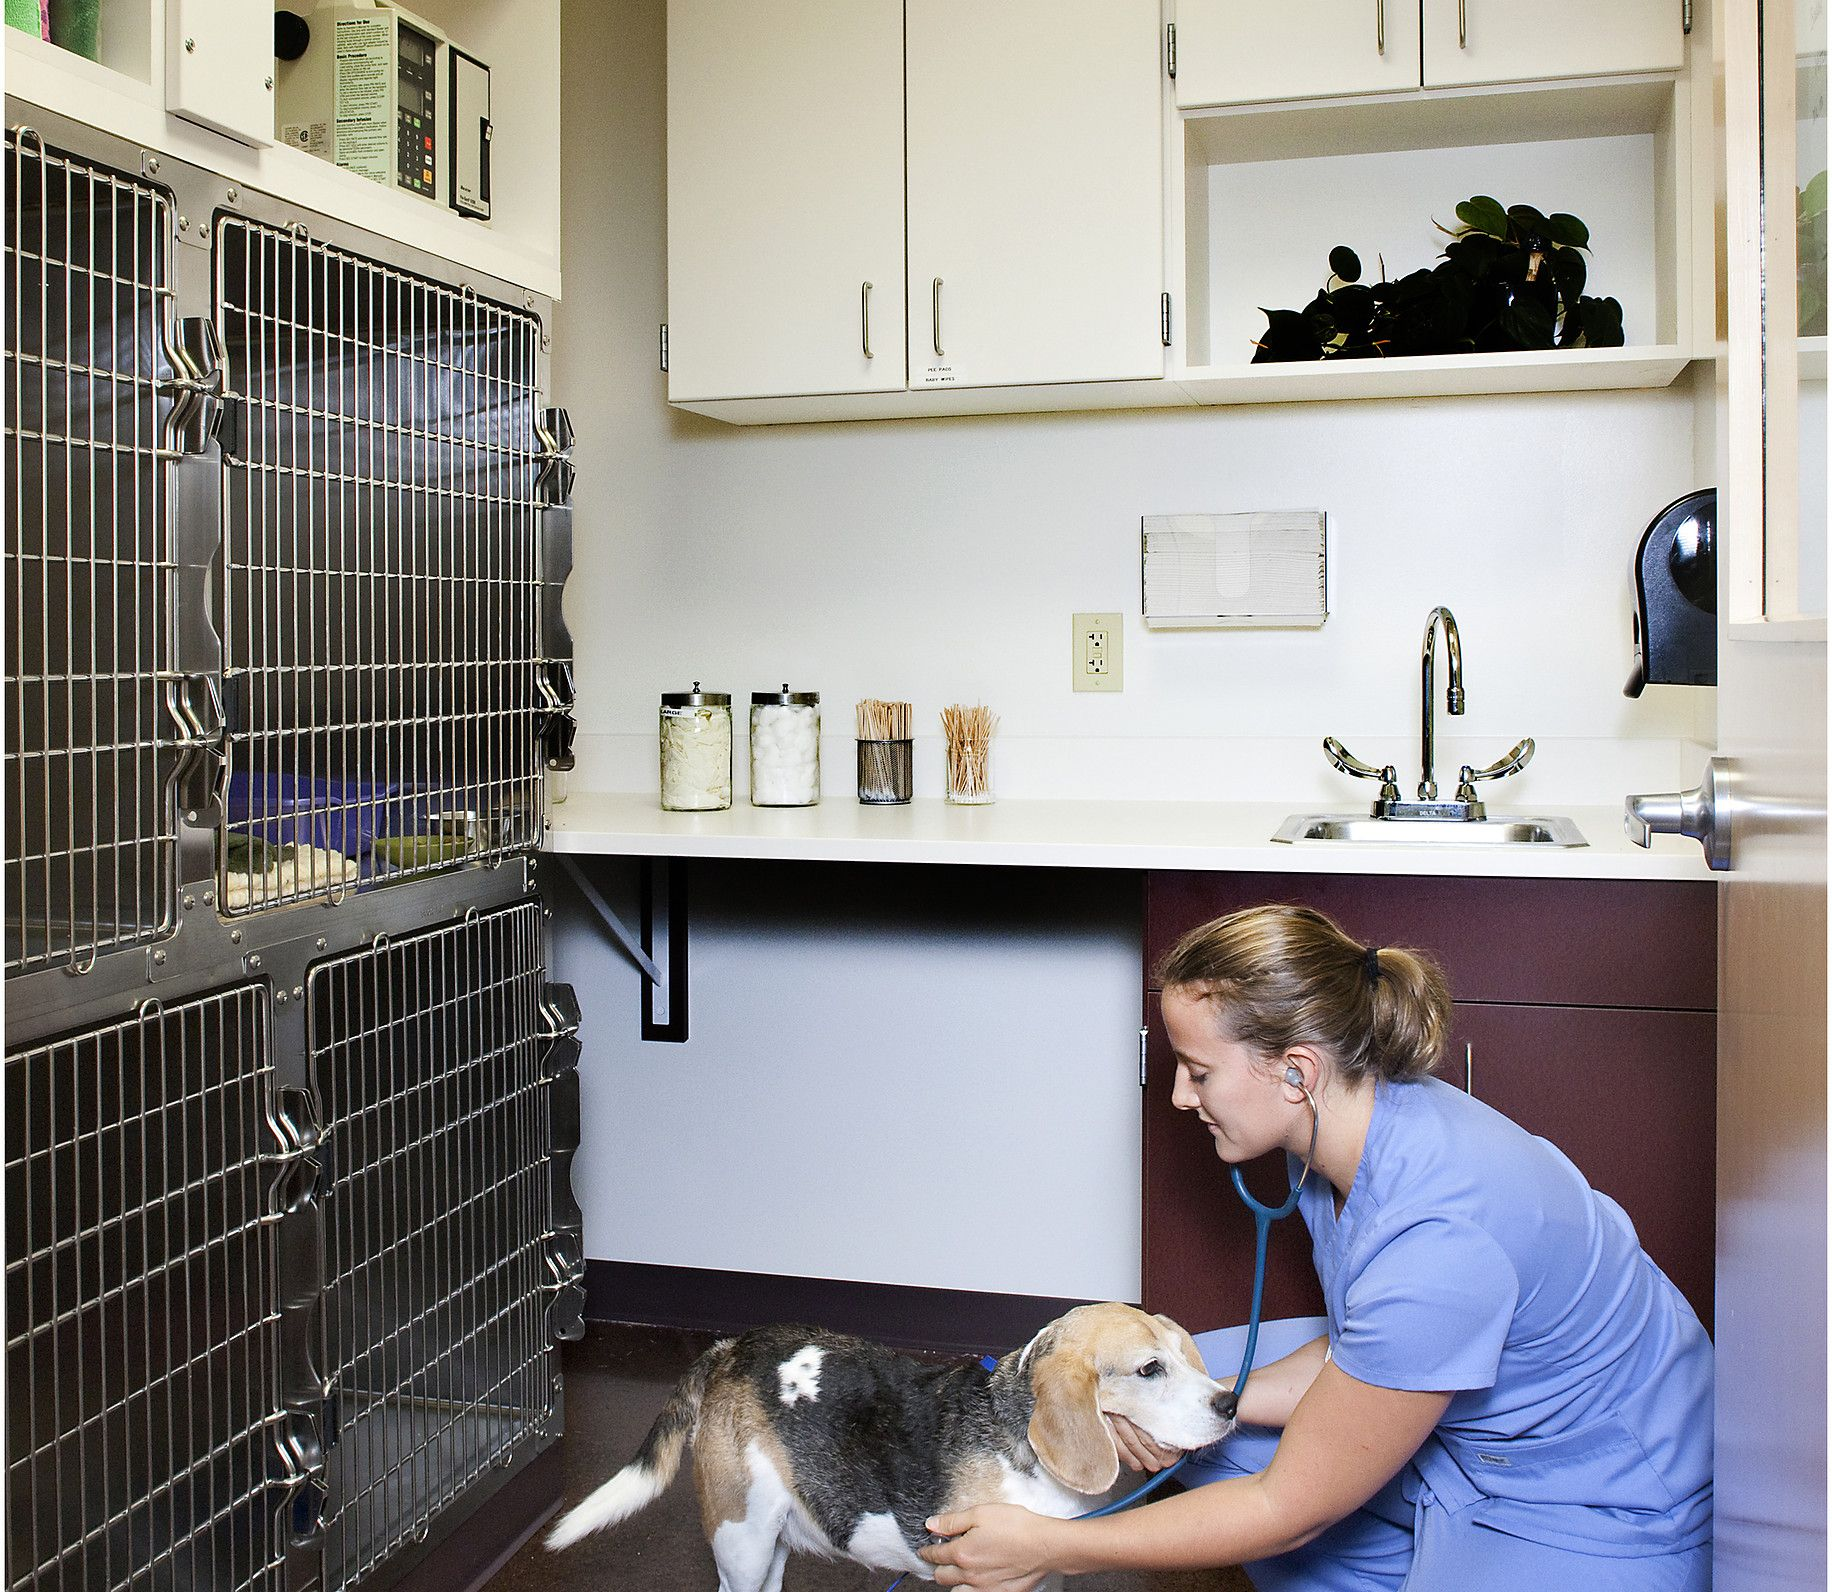 Woodhaven Veterinary Clinic Tour Woodhaven Clinic